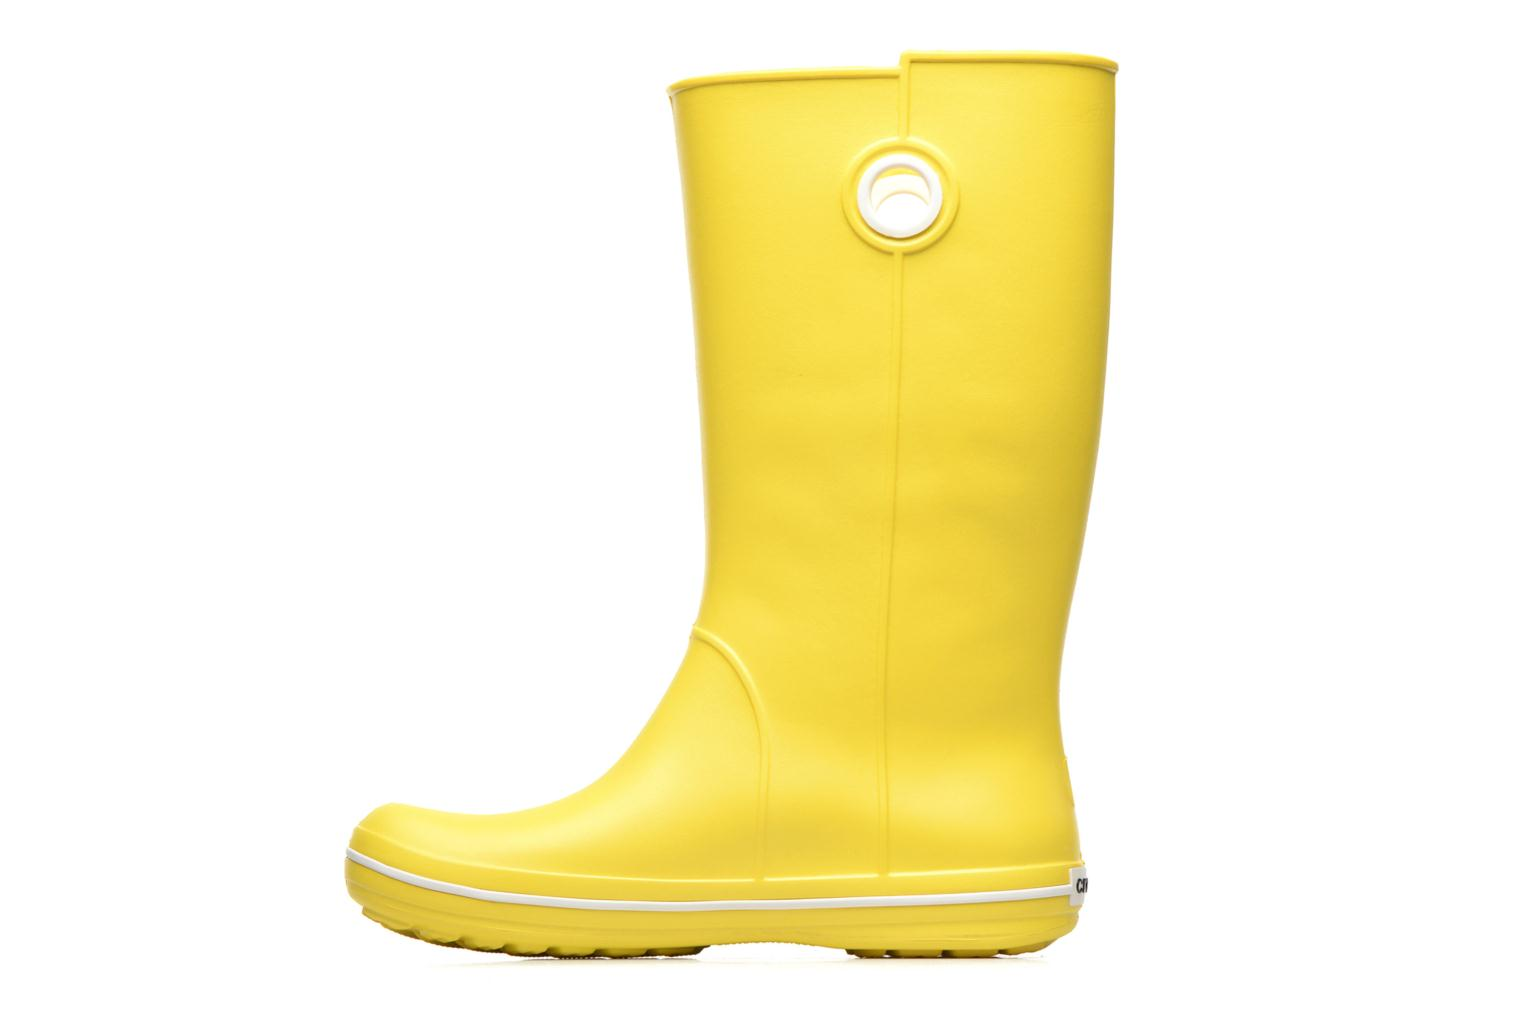 Boots & wellies Crocs Crocband jaunt women's Yellow front view